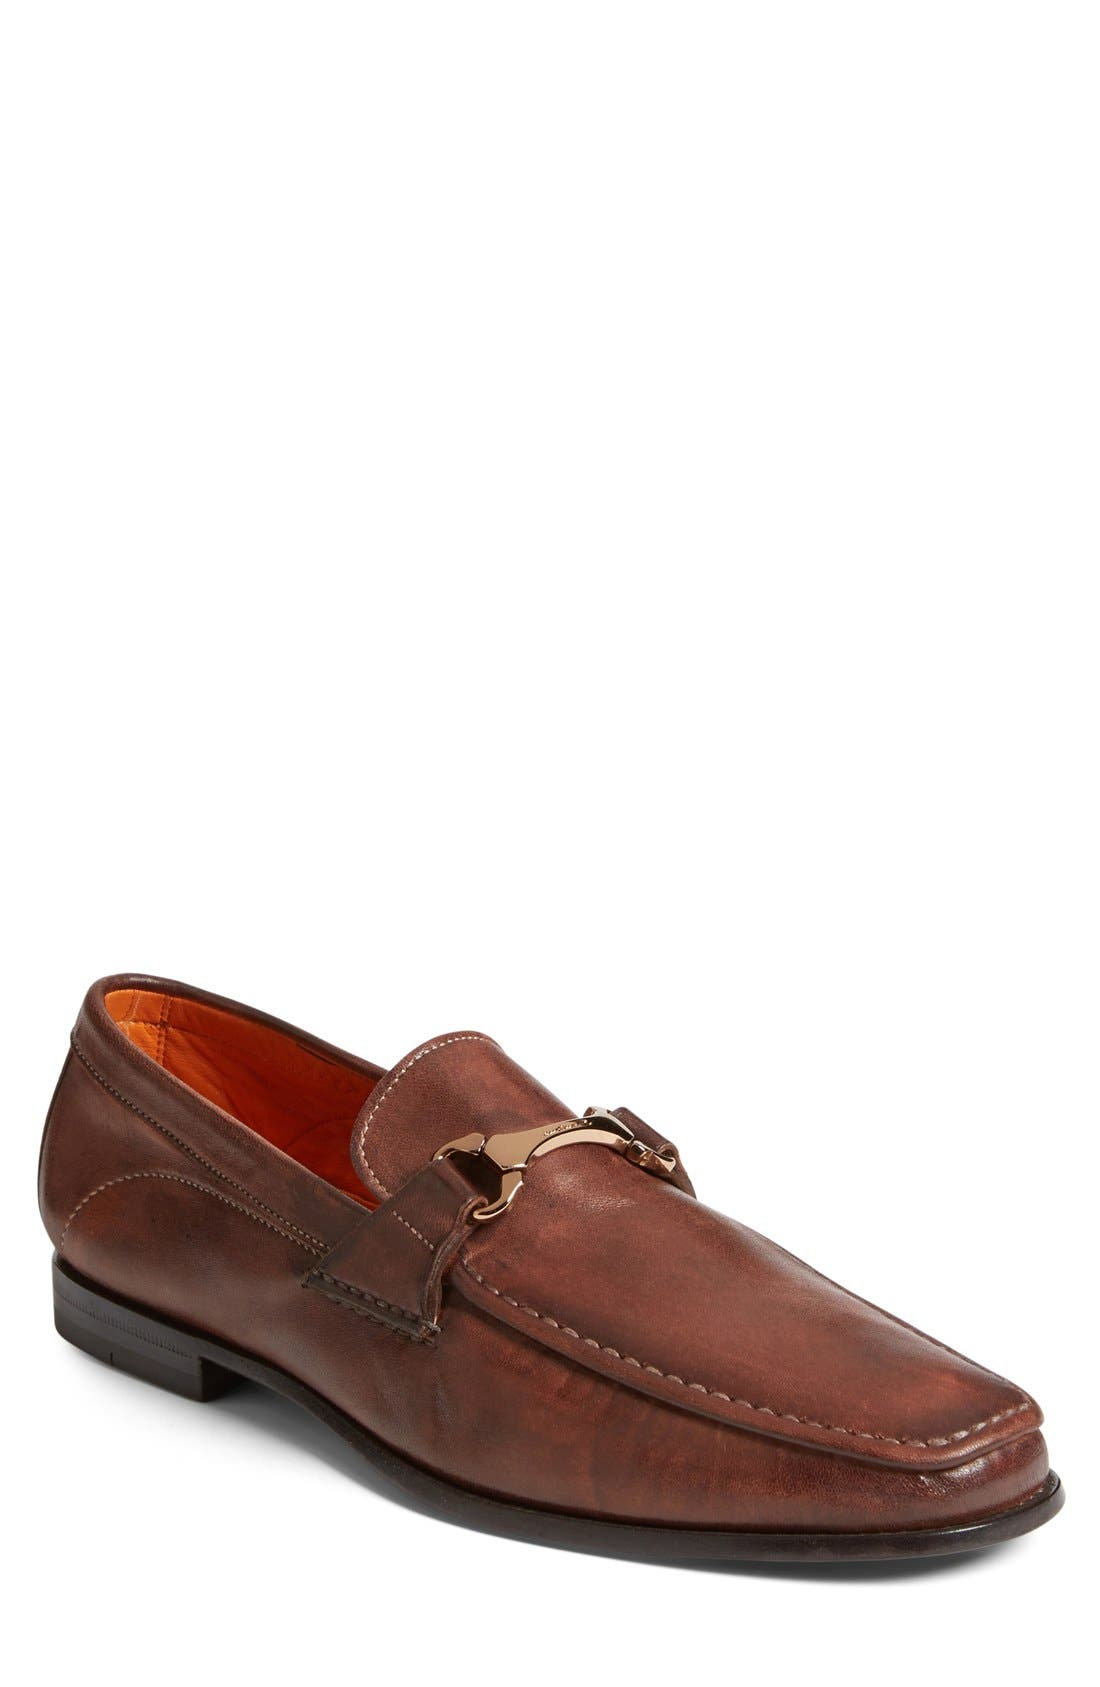 Alternate Image 1 Selected - Santoni 'Wake' Bit Loafer (Men)